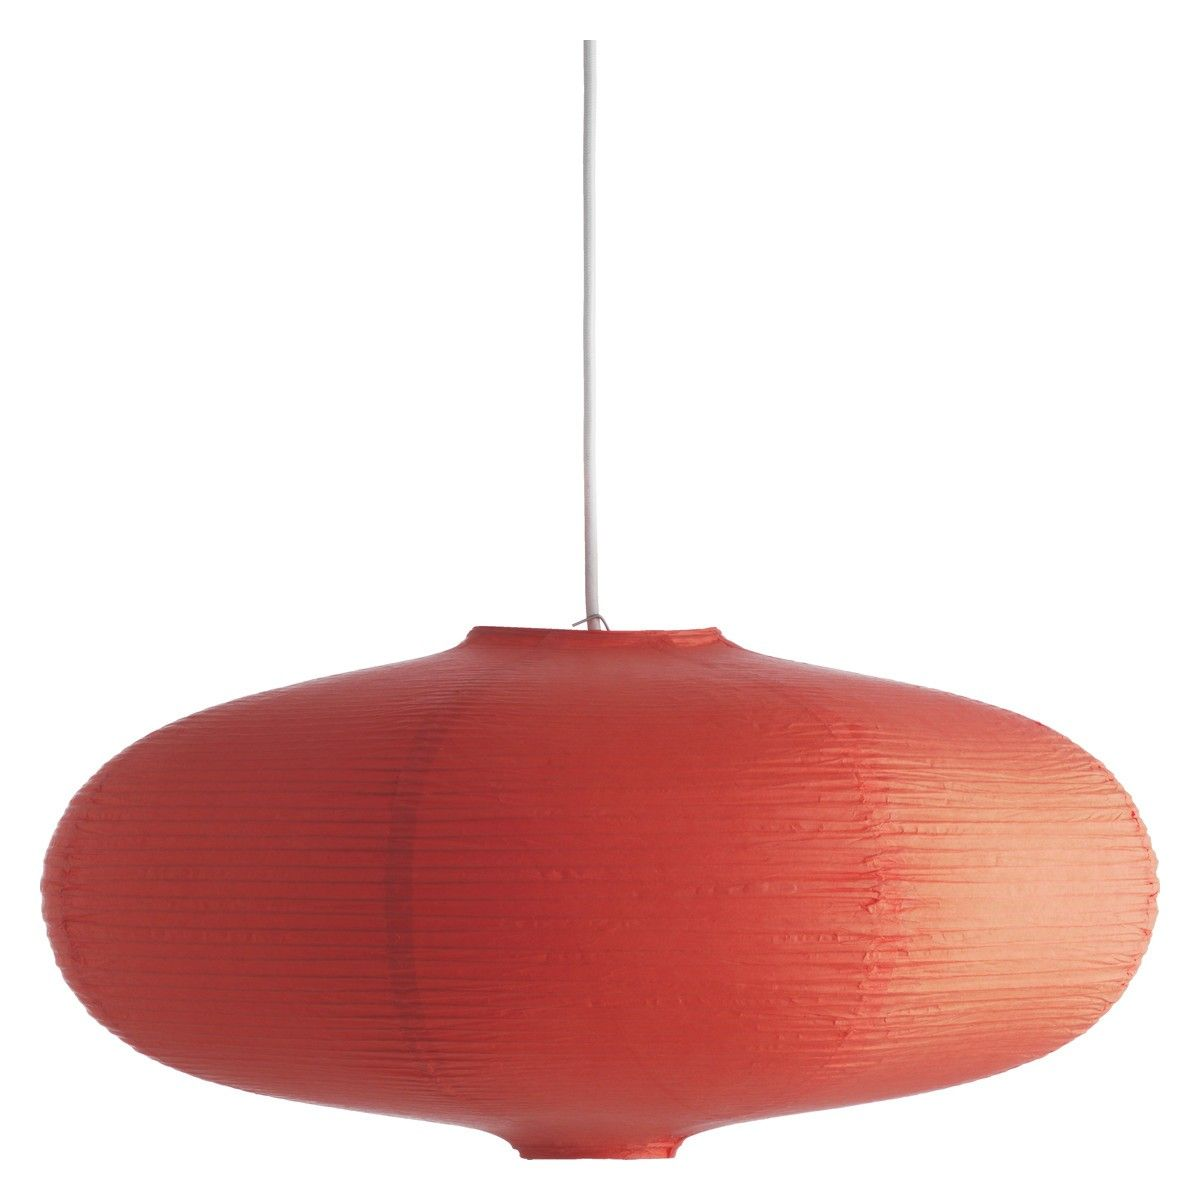 habitat, shiro orange paper ceiling light shade. looks lovely with